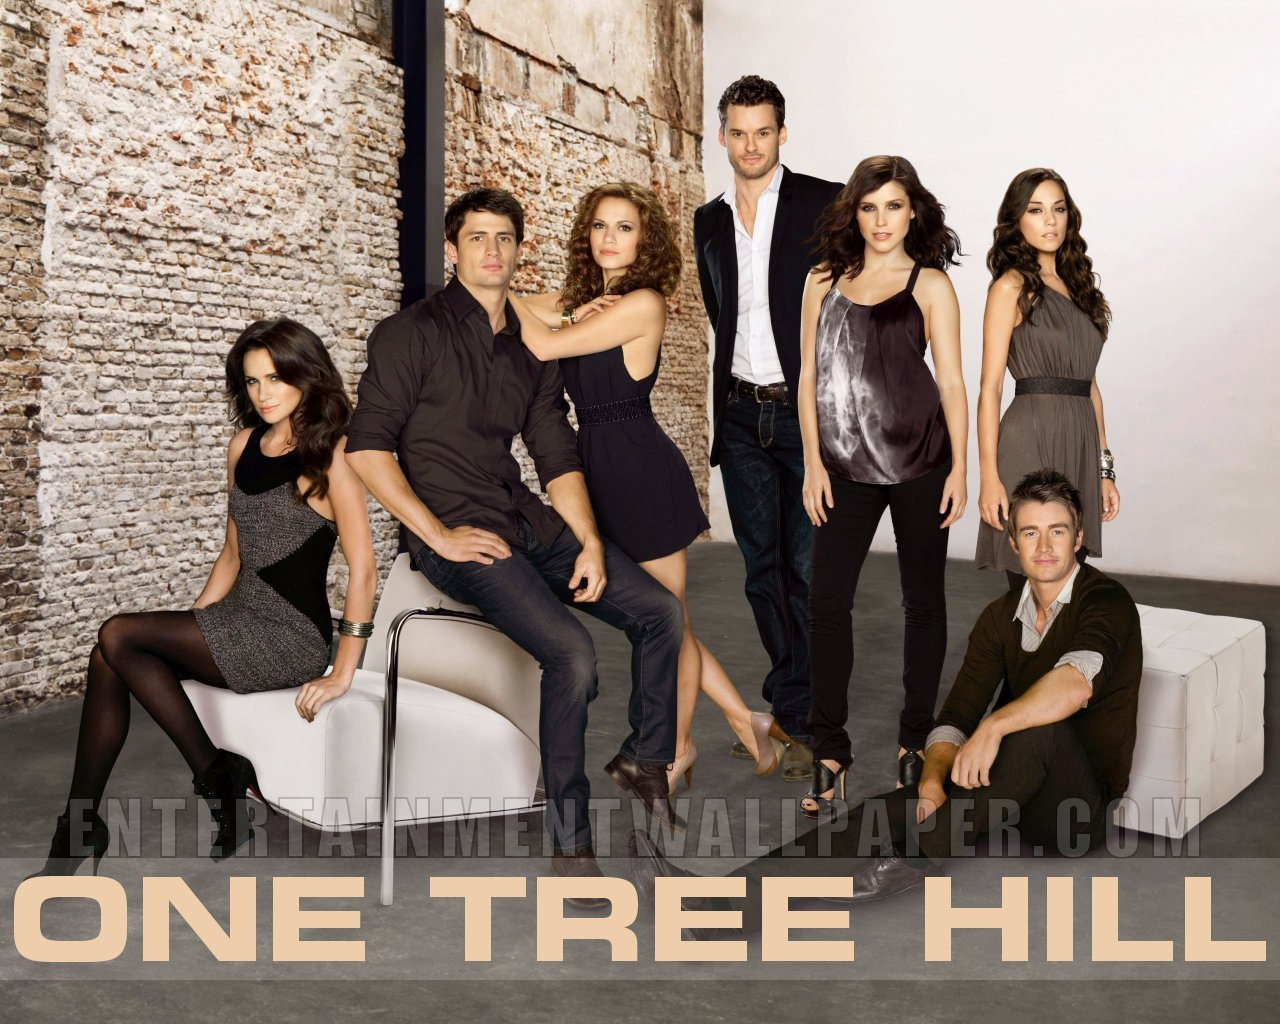 ONE TREE HILL♥ - ONE TREE HILL Wallpaper (11754056) - Fanpop